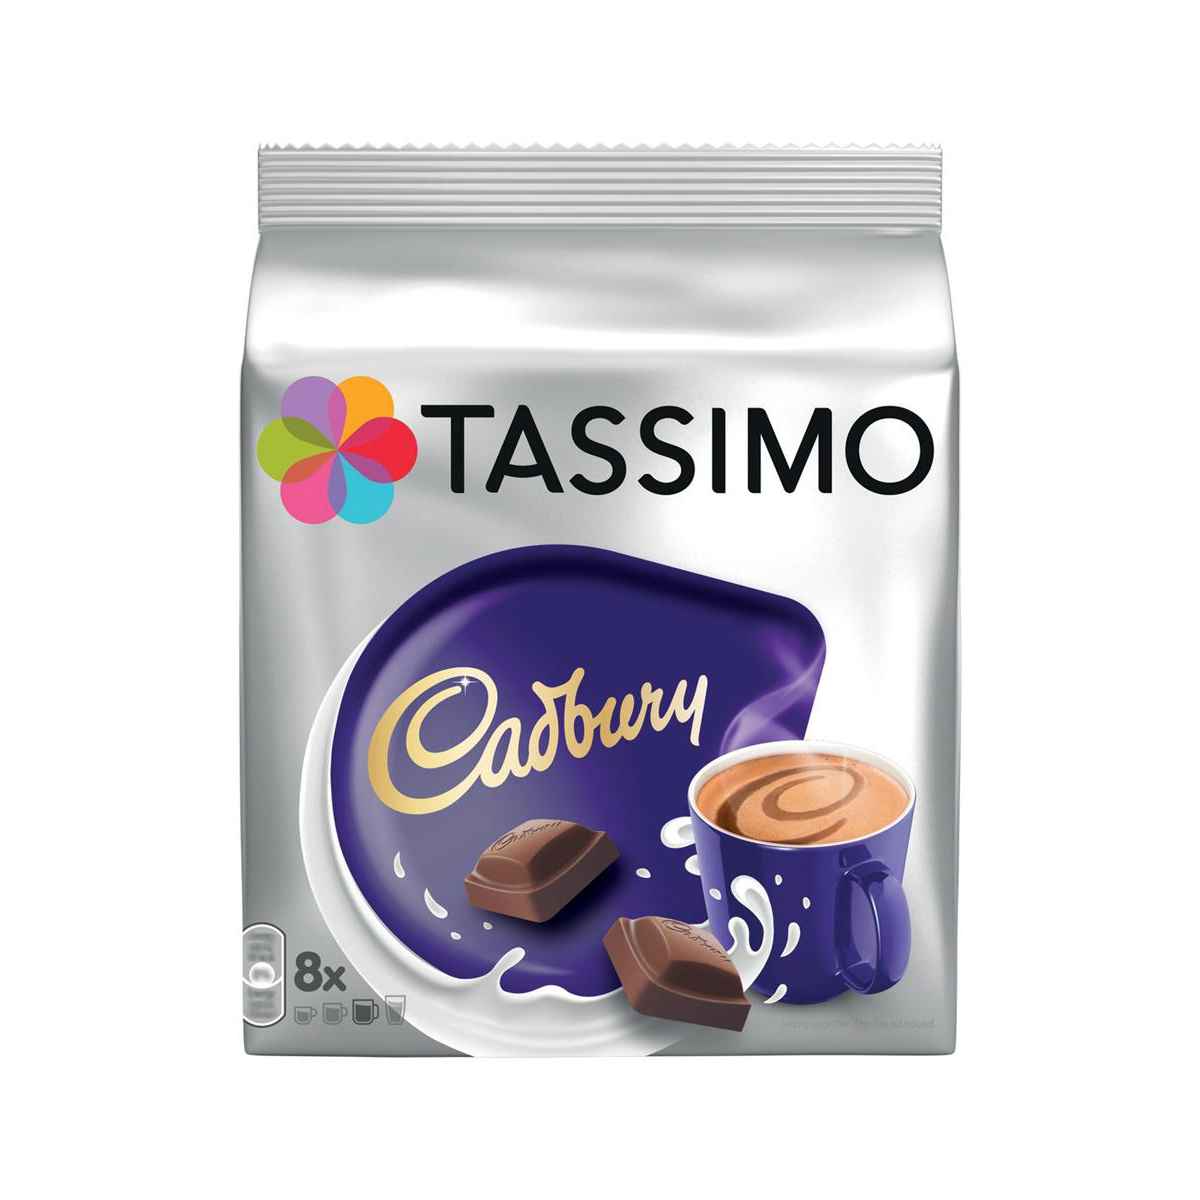 Coffee Tassimo Cadbury Hot Chocolate Pods 8 Servings Per Pack Ref 4031638 Pack 5 x 8